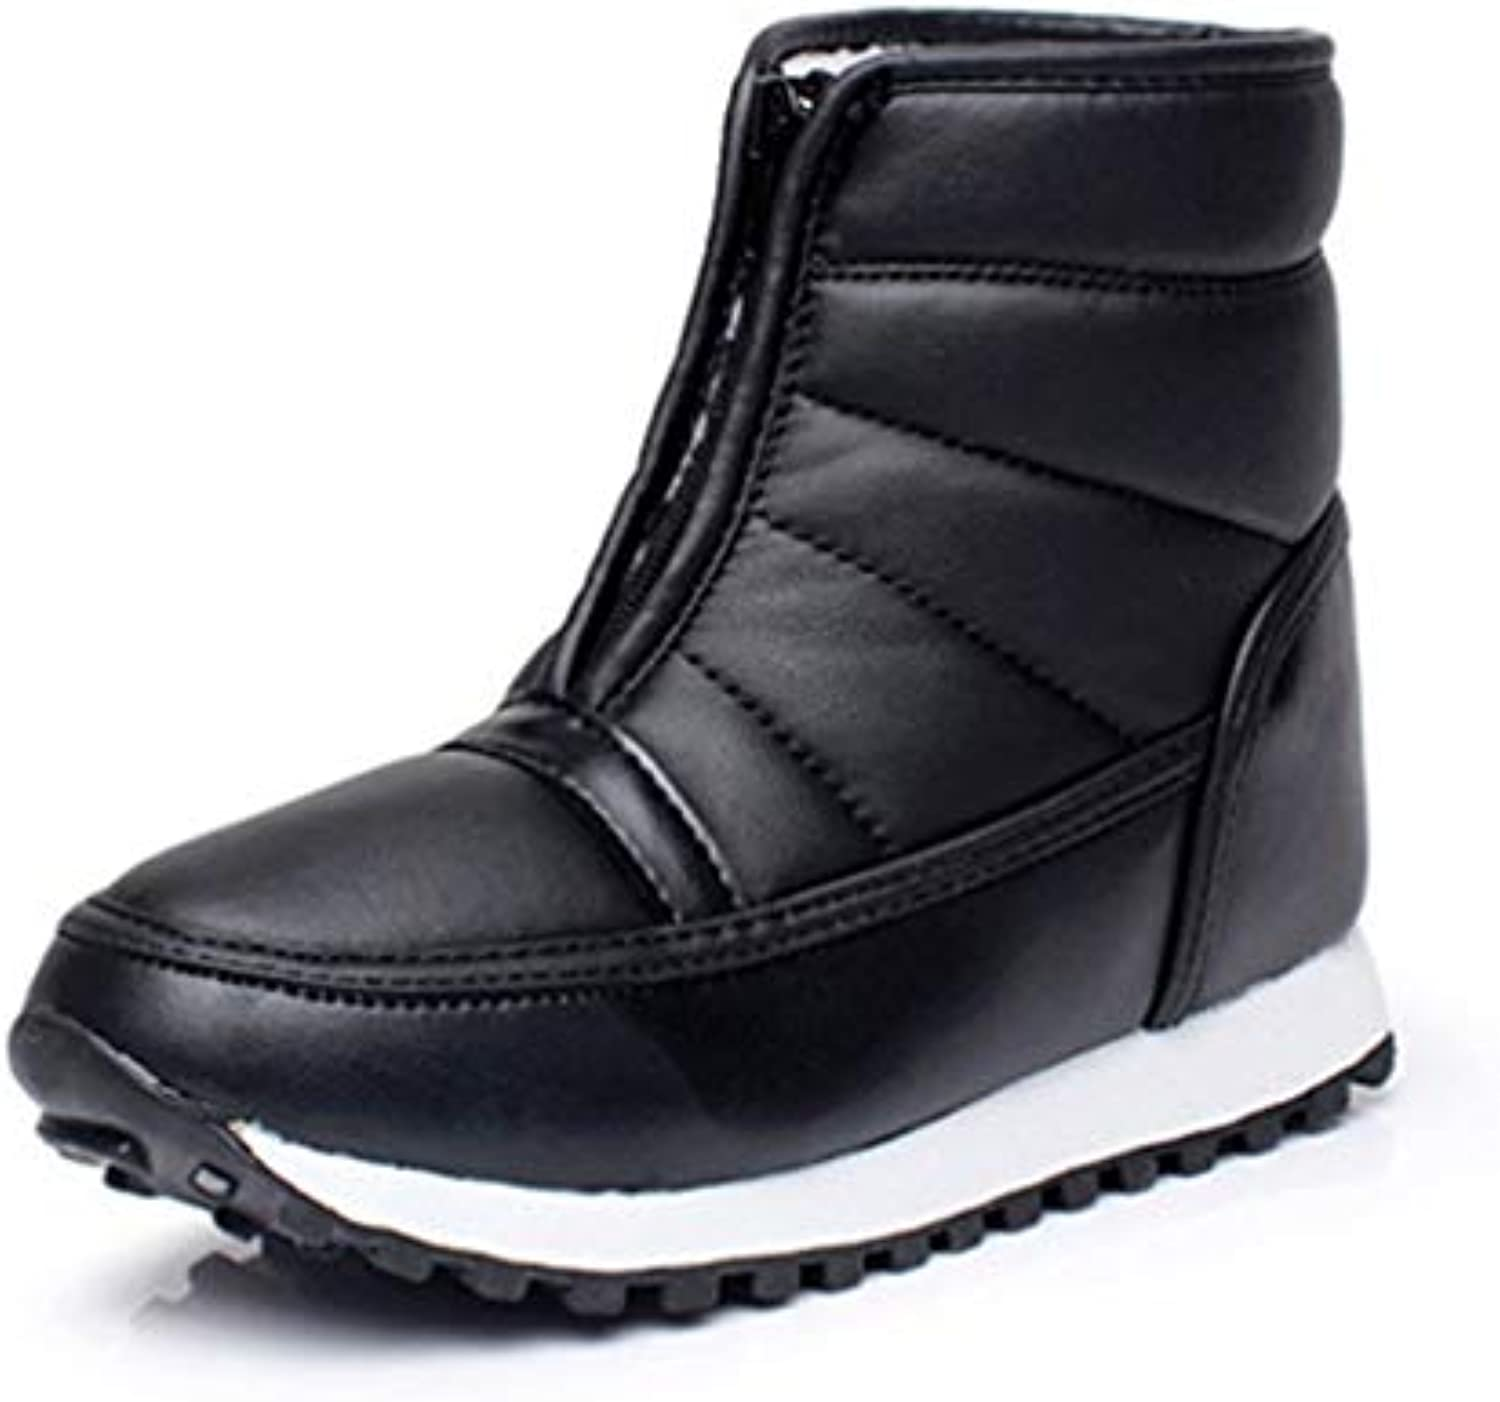 T-JULY Women Winter New Warm Snow Boots Ladies PU Ankle Boots Unisex Warm Fur Insole Boots